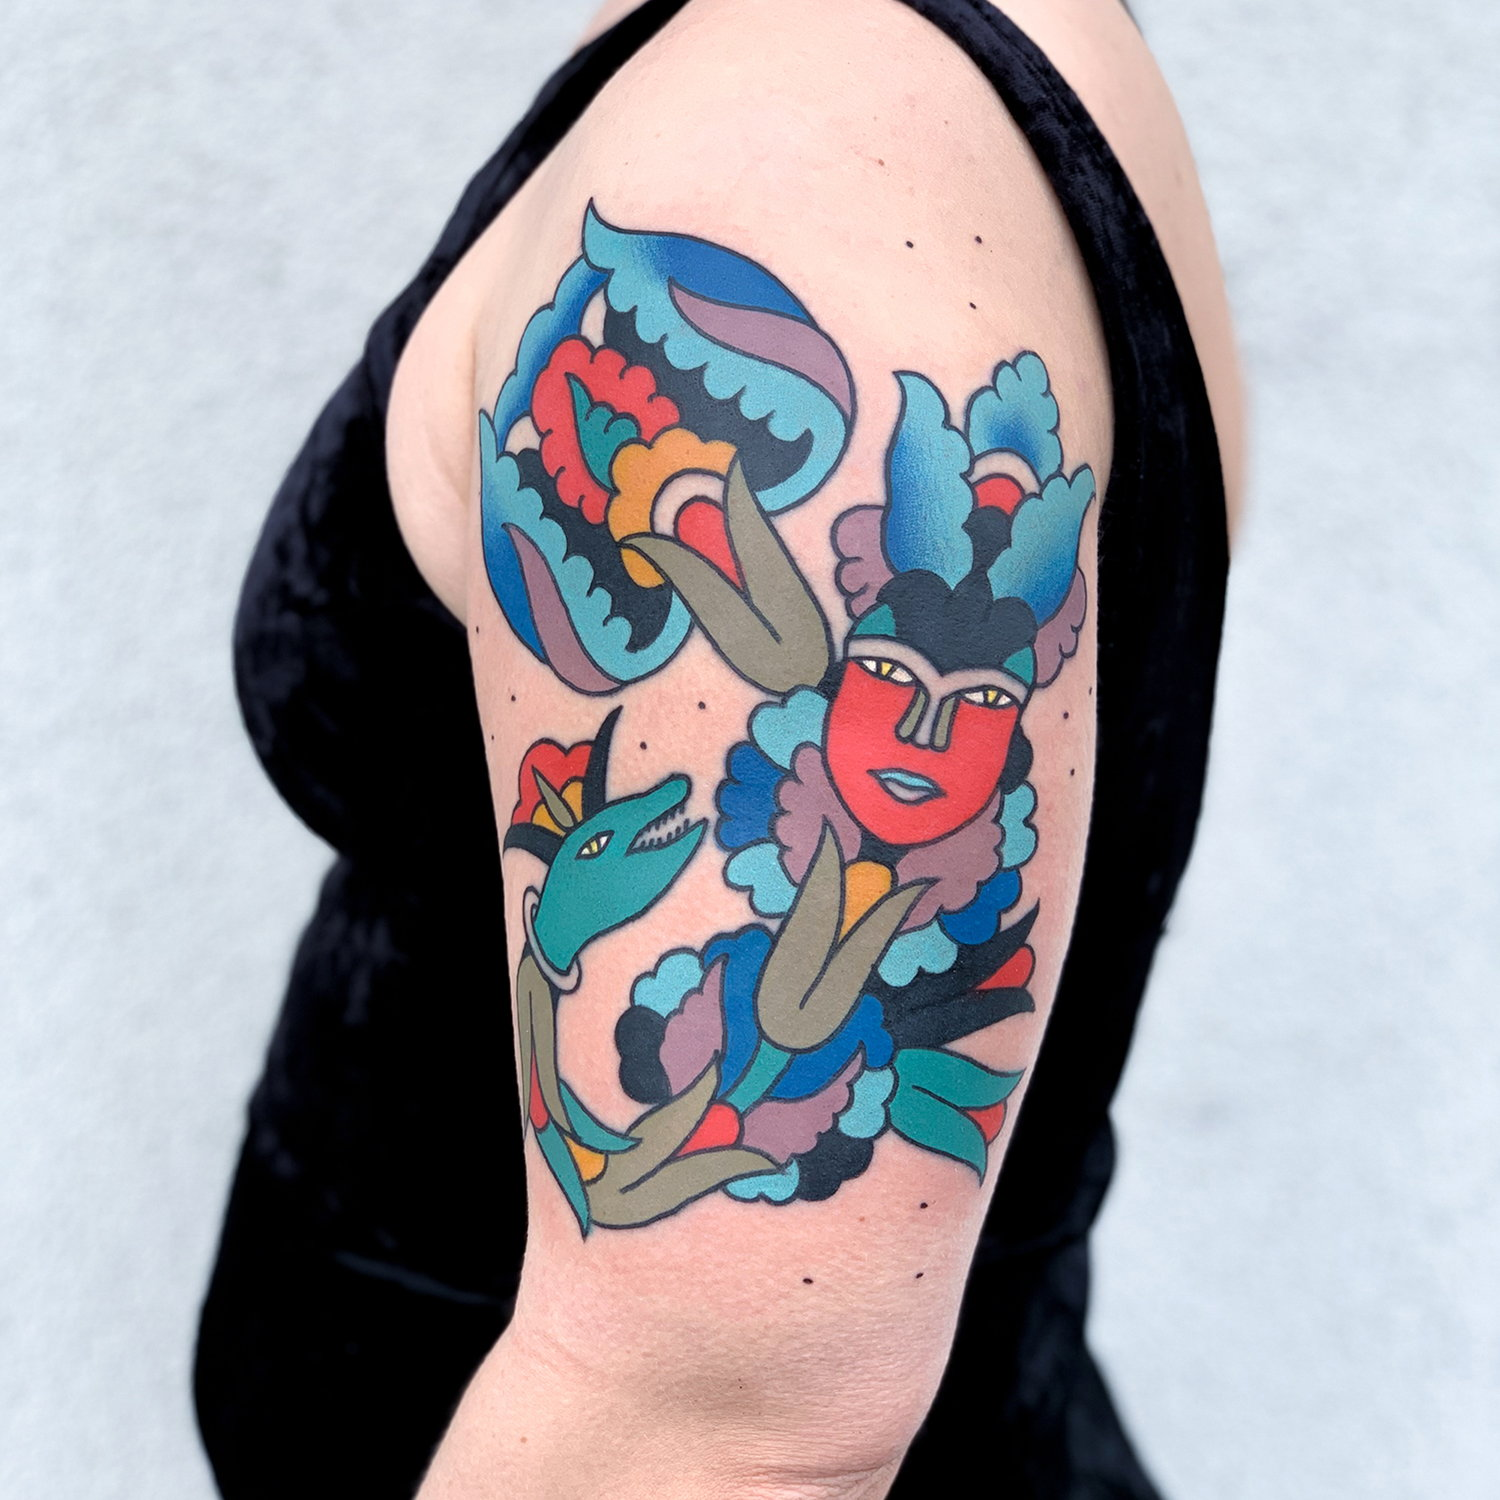 lips, mouth and flowers, abstract color tattoo on arm